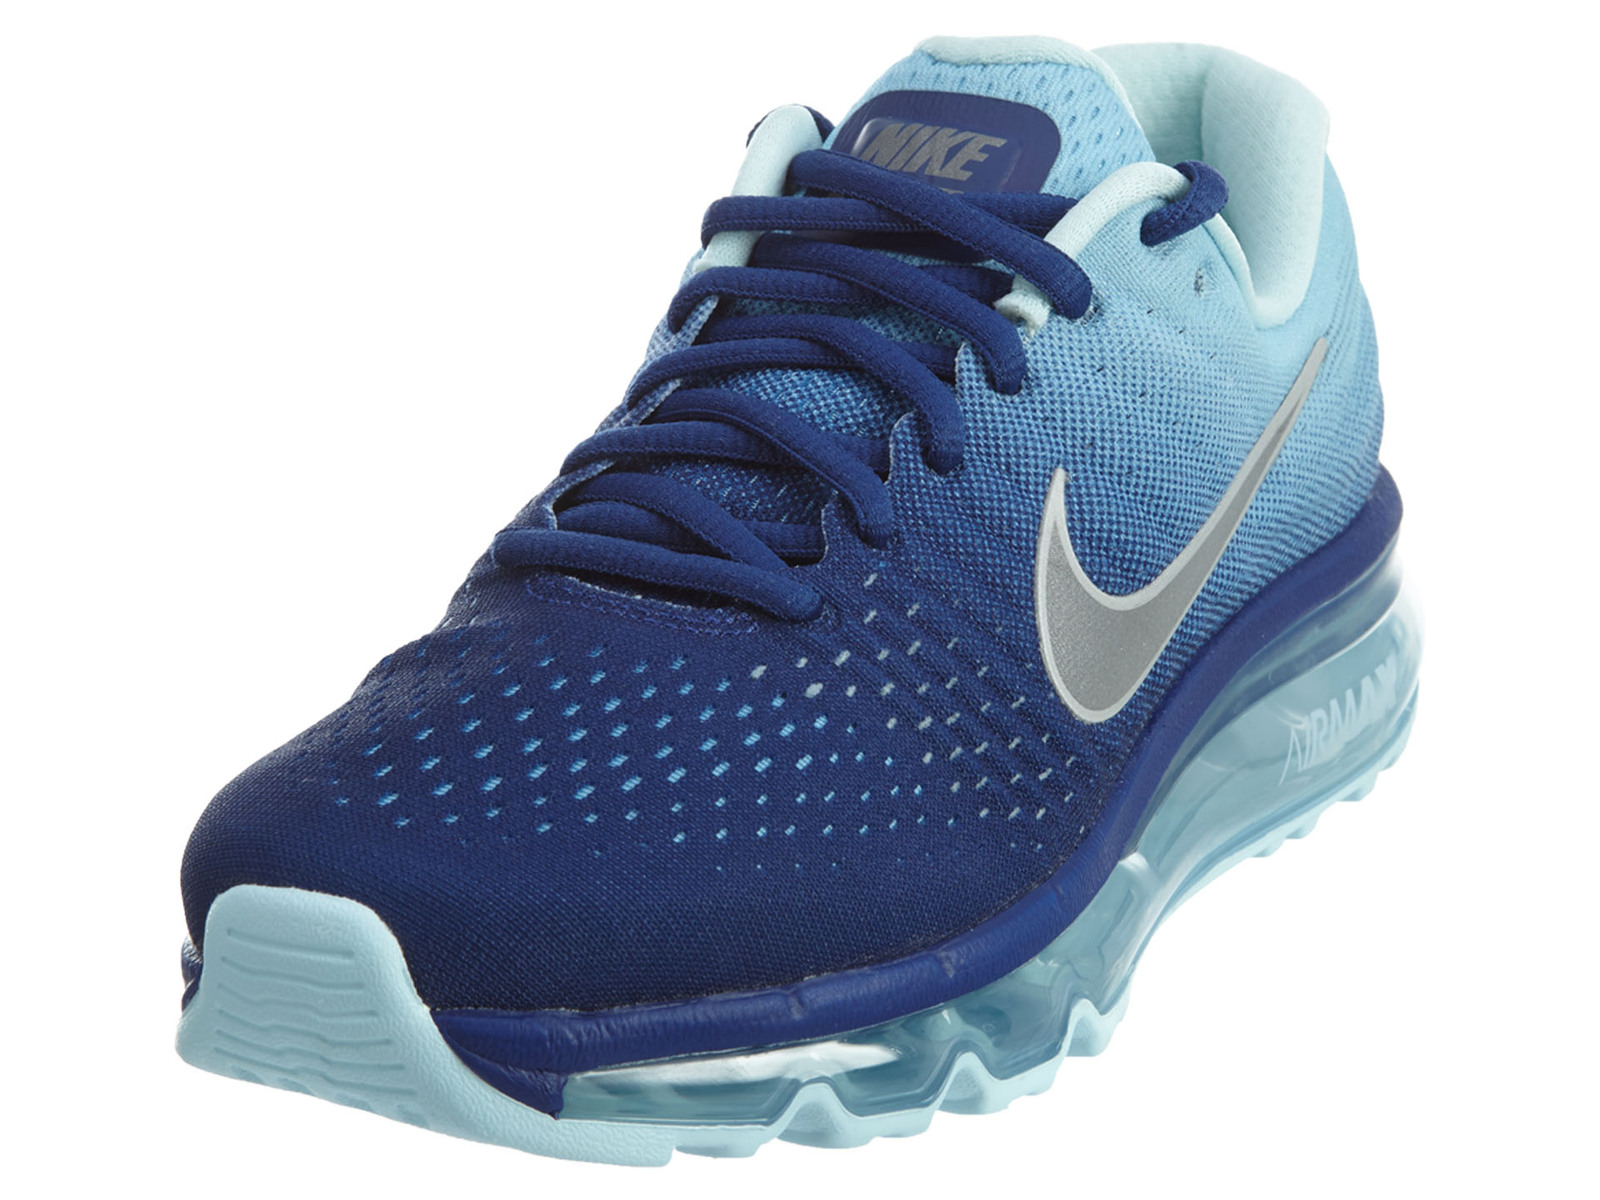 397eb75486 Nike Air Max Kids Kids Footlocker | Pacific Climate Change Portal